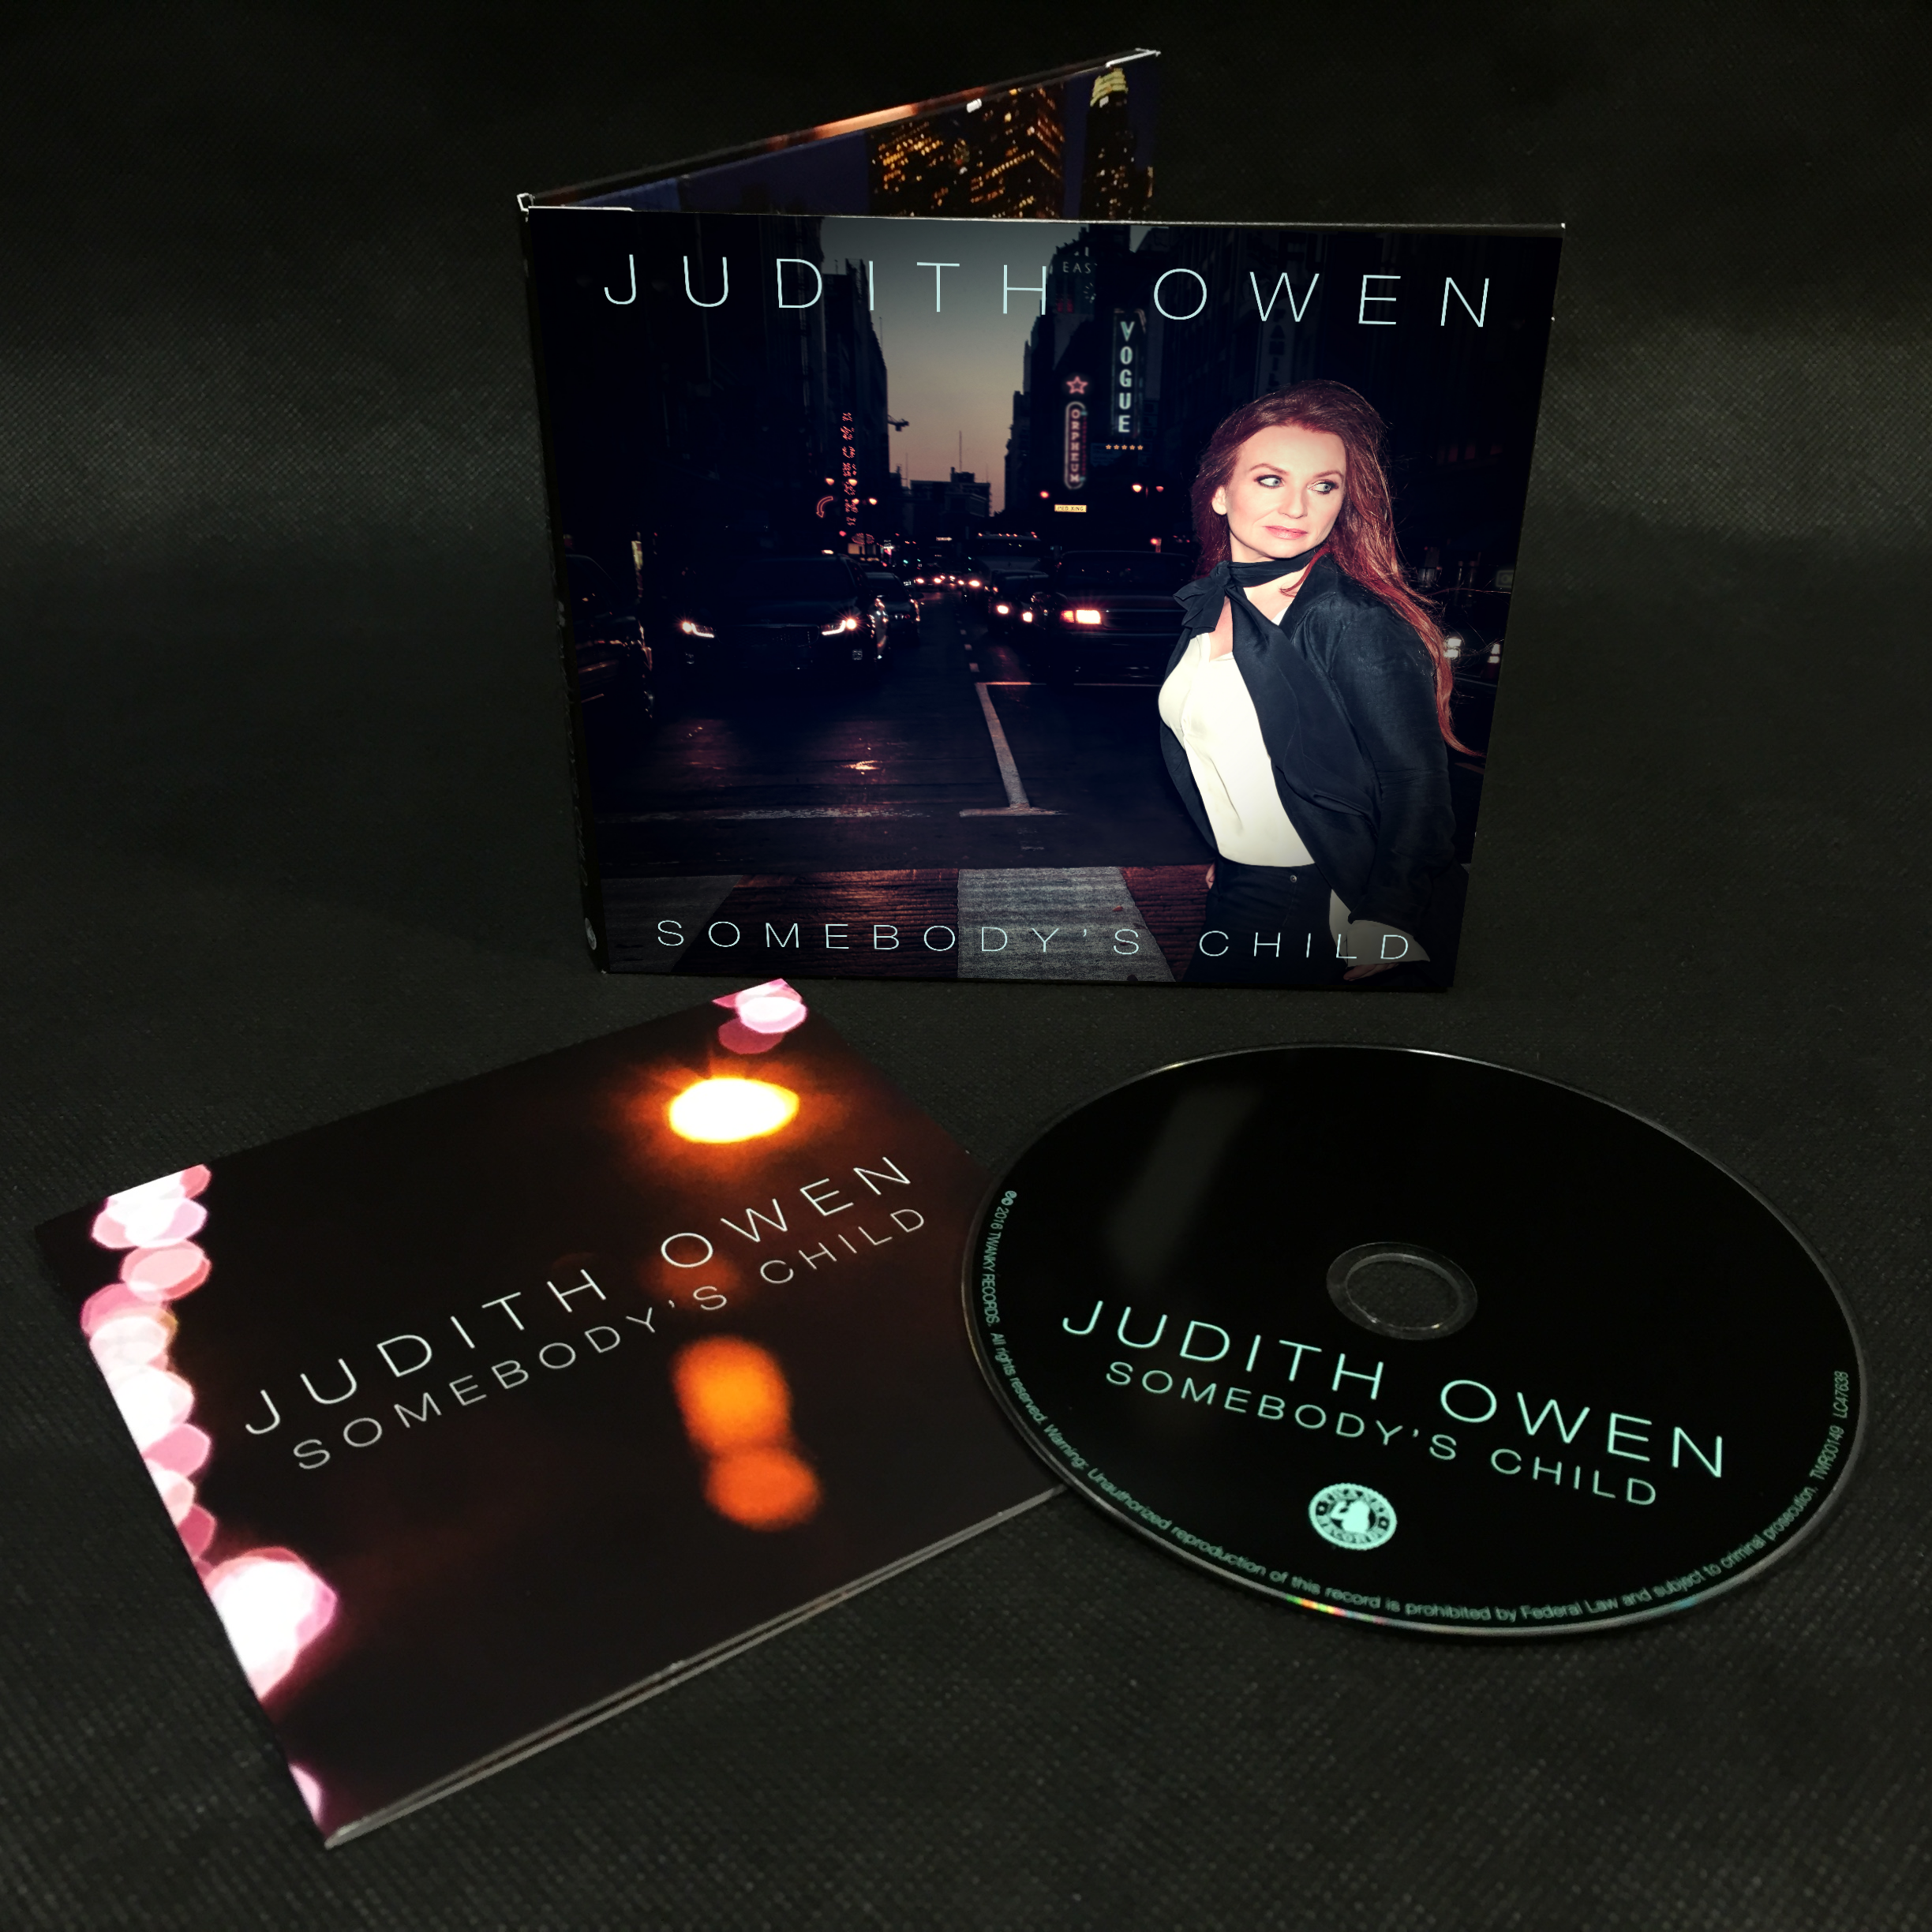 Somebody's Child (Limited Signed CD) - Judith Owen